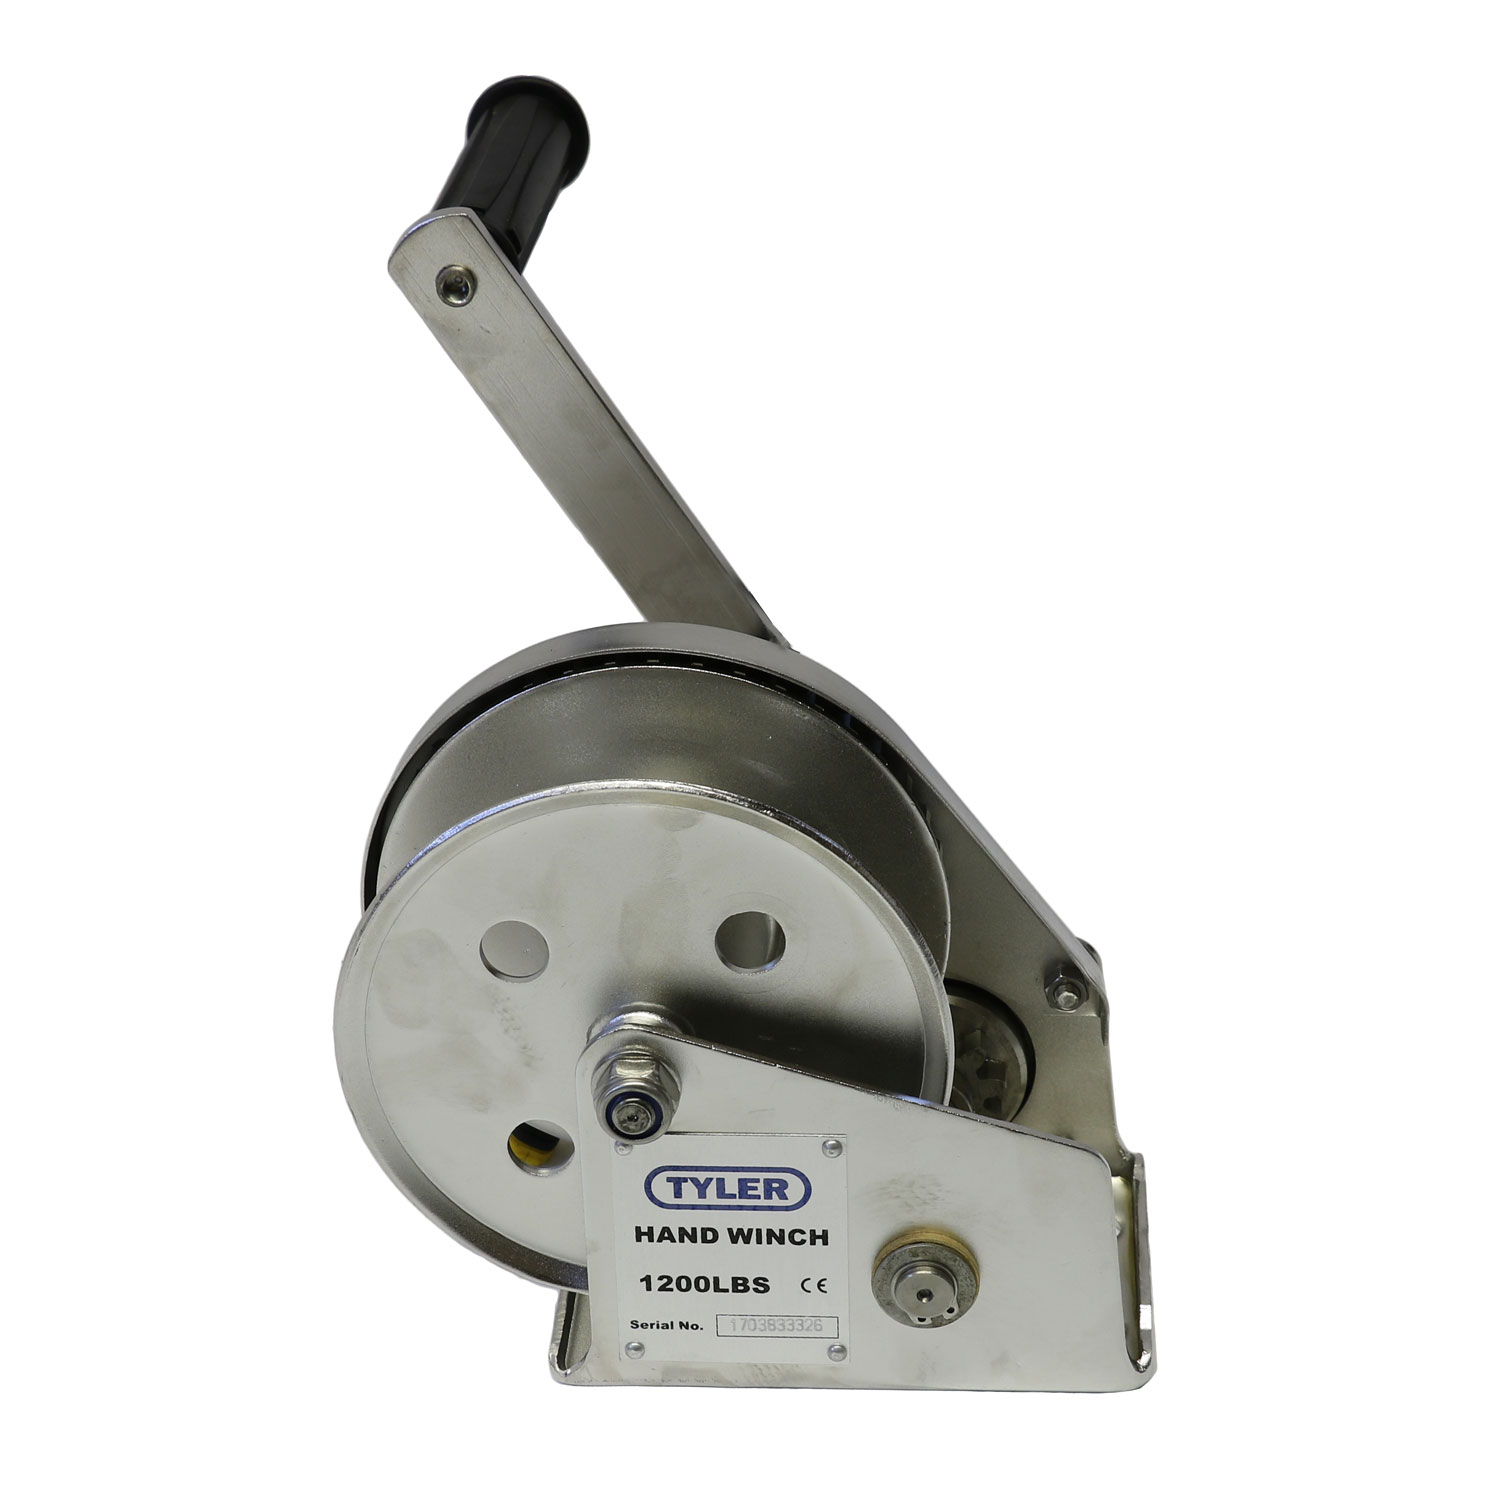 1200 lb WLL Tyler Tool Stainless Steel Hand Winch Image 1